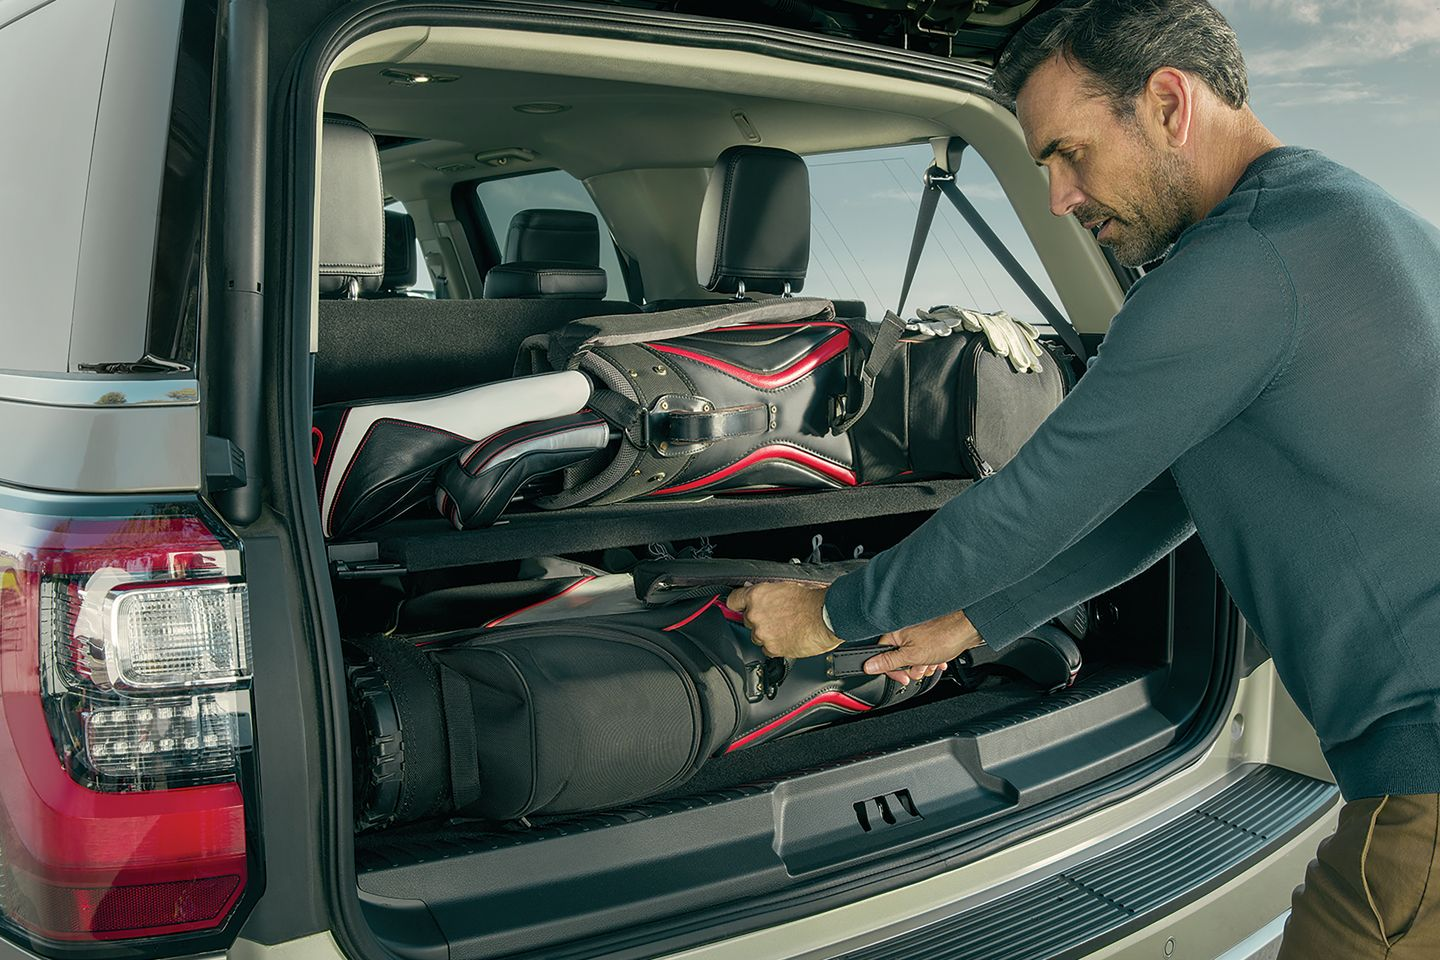 Fit Your Luggage Inside with Ease!